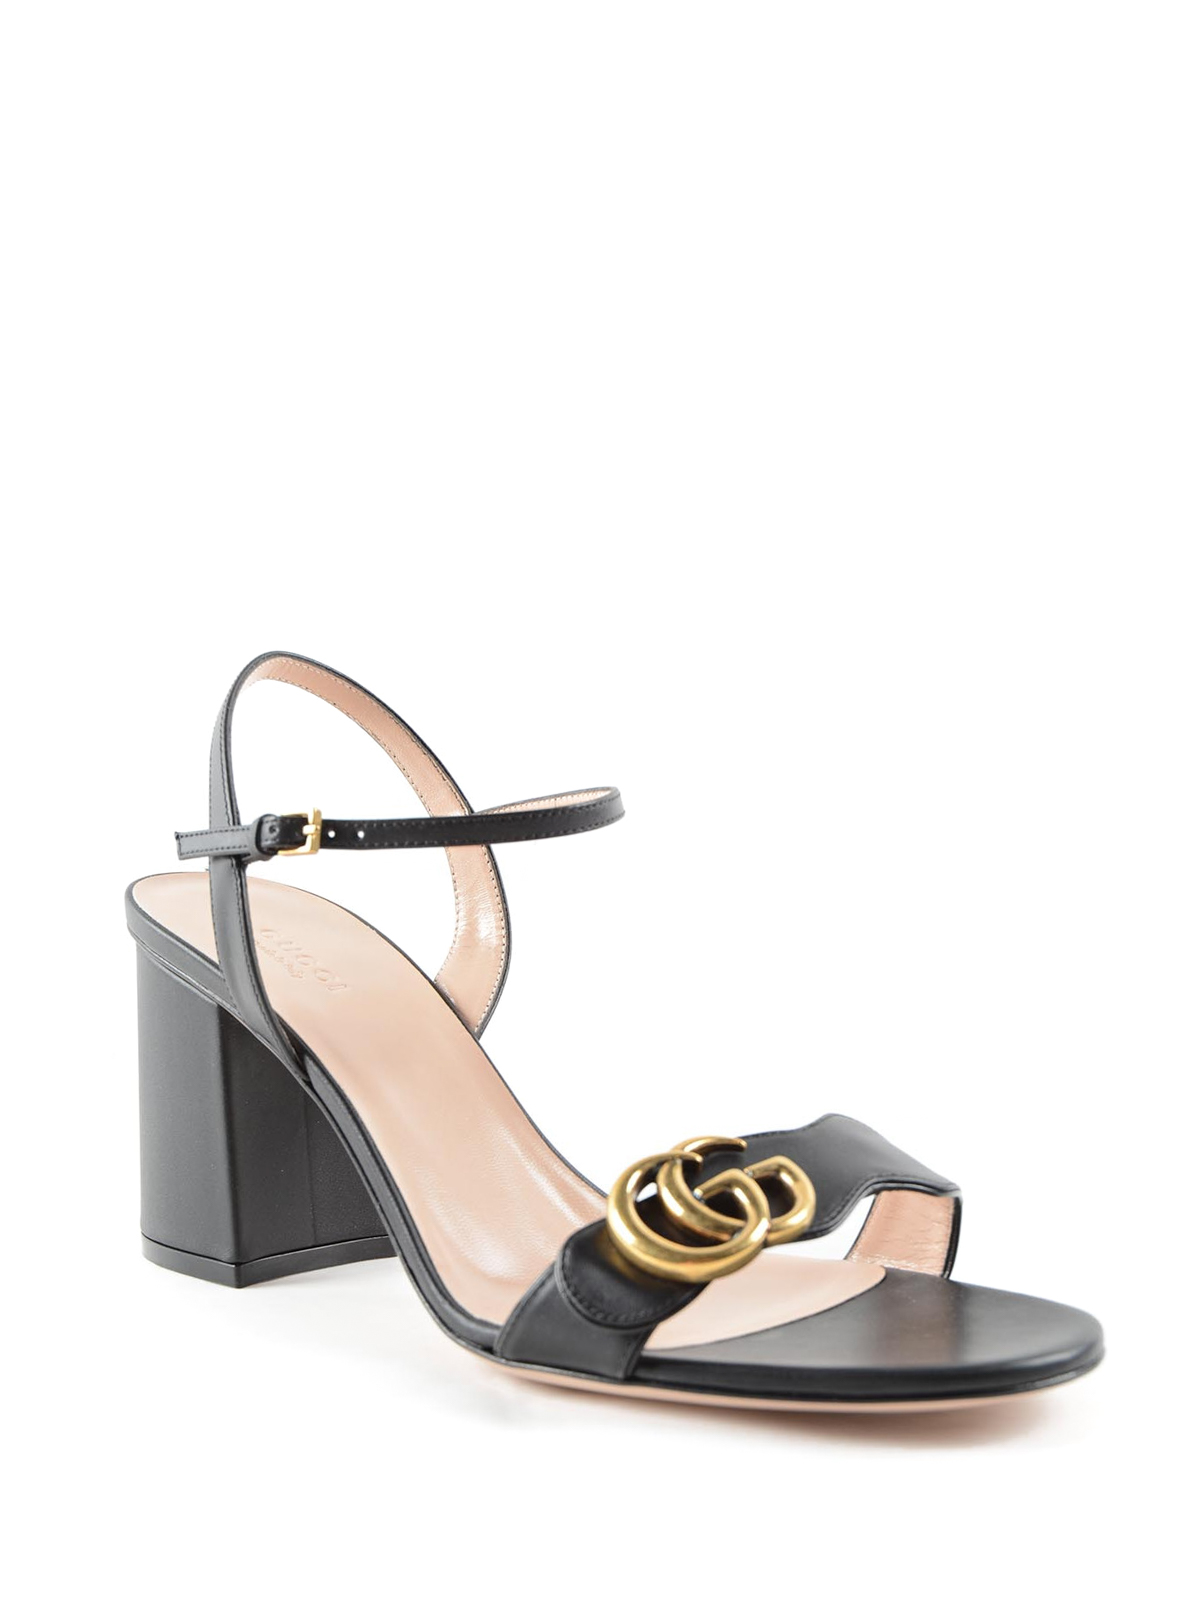 e22f4f21f77 Gucci - Mid-heel GG leather sandals - sandals - 453379 A3N00 1000